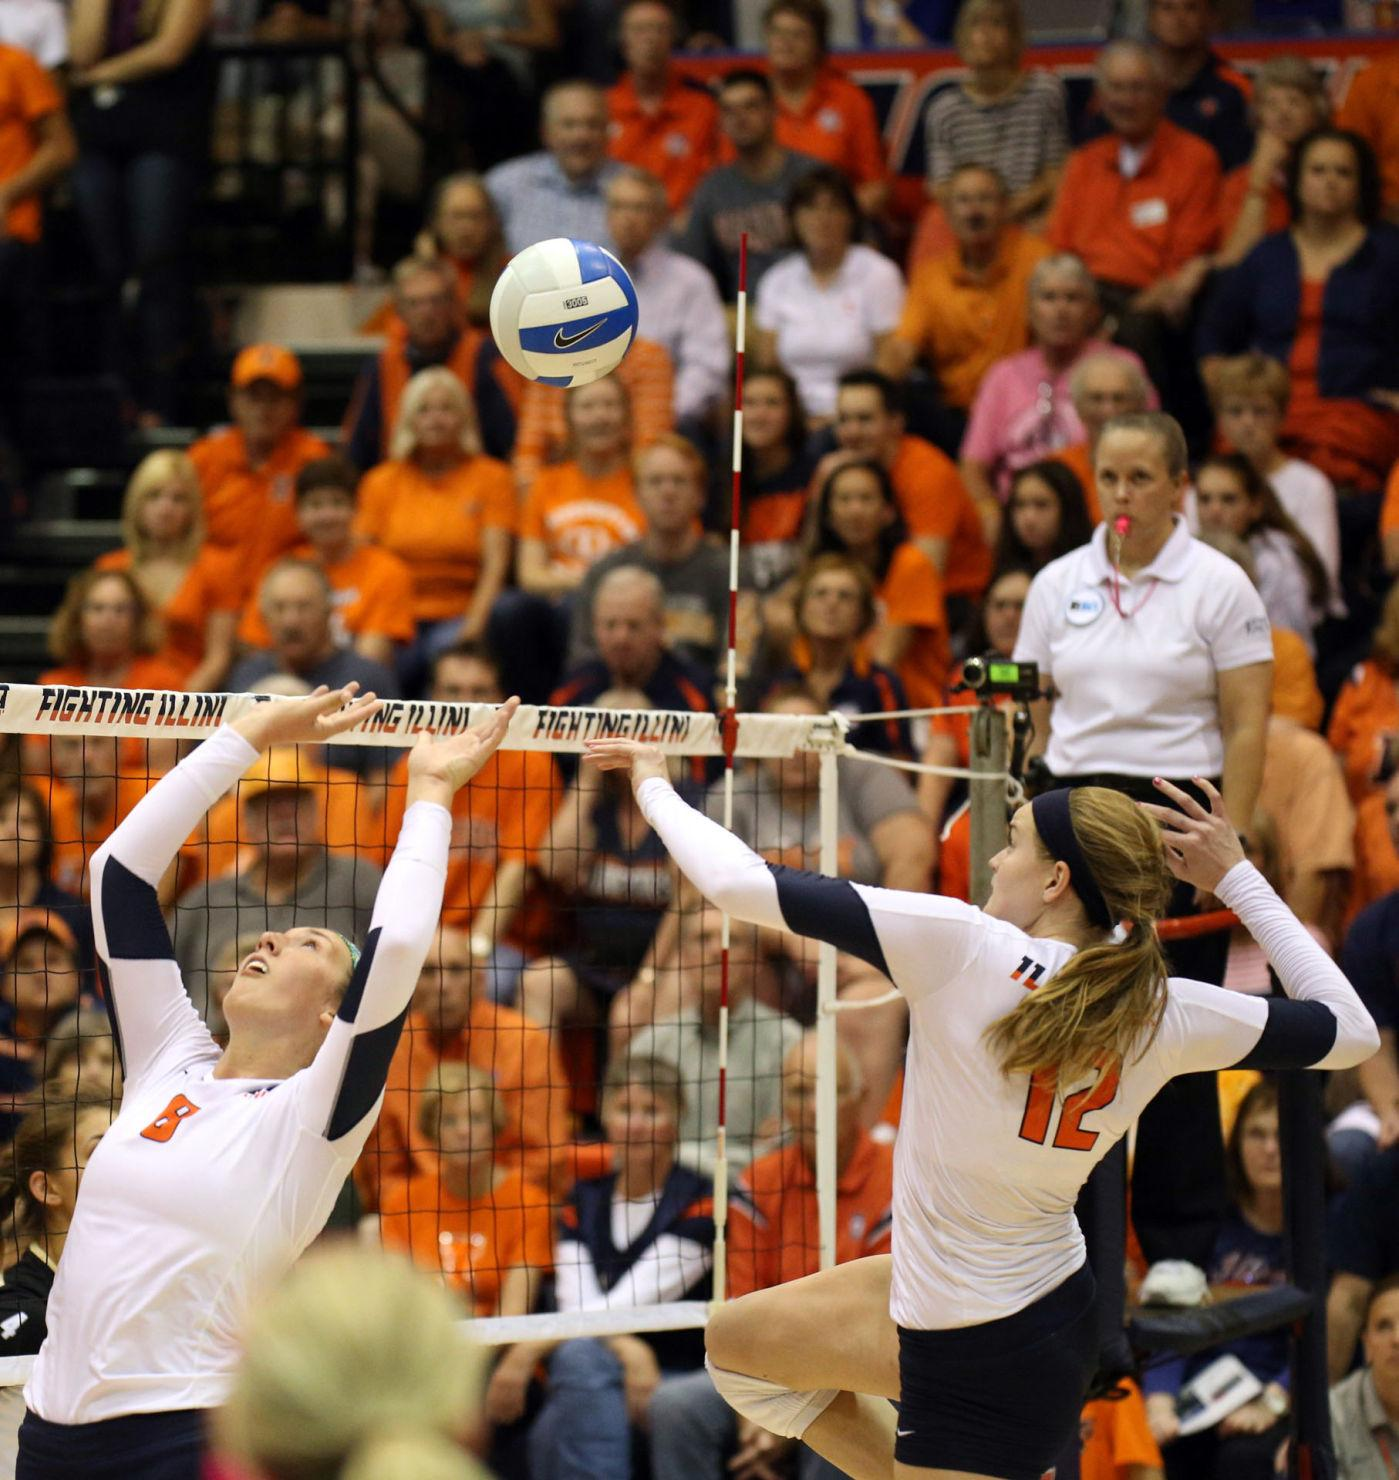 Illinois' Katie Stadick (12) rises for a spike during the winning game against Purdue last season.